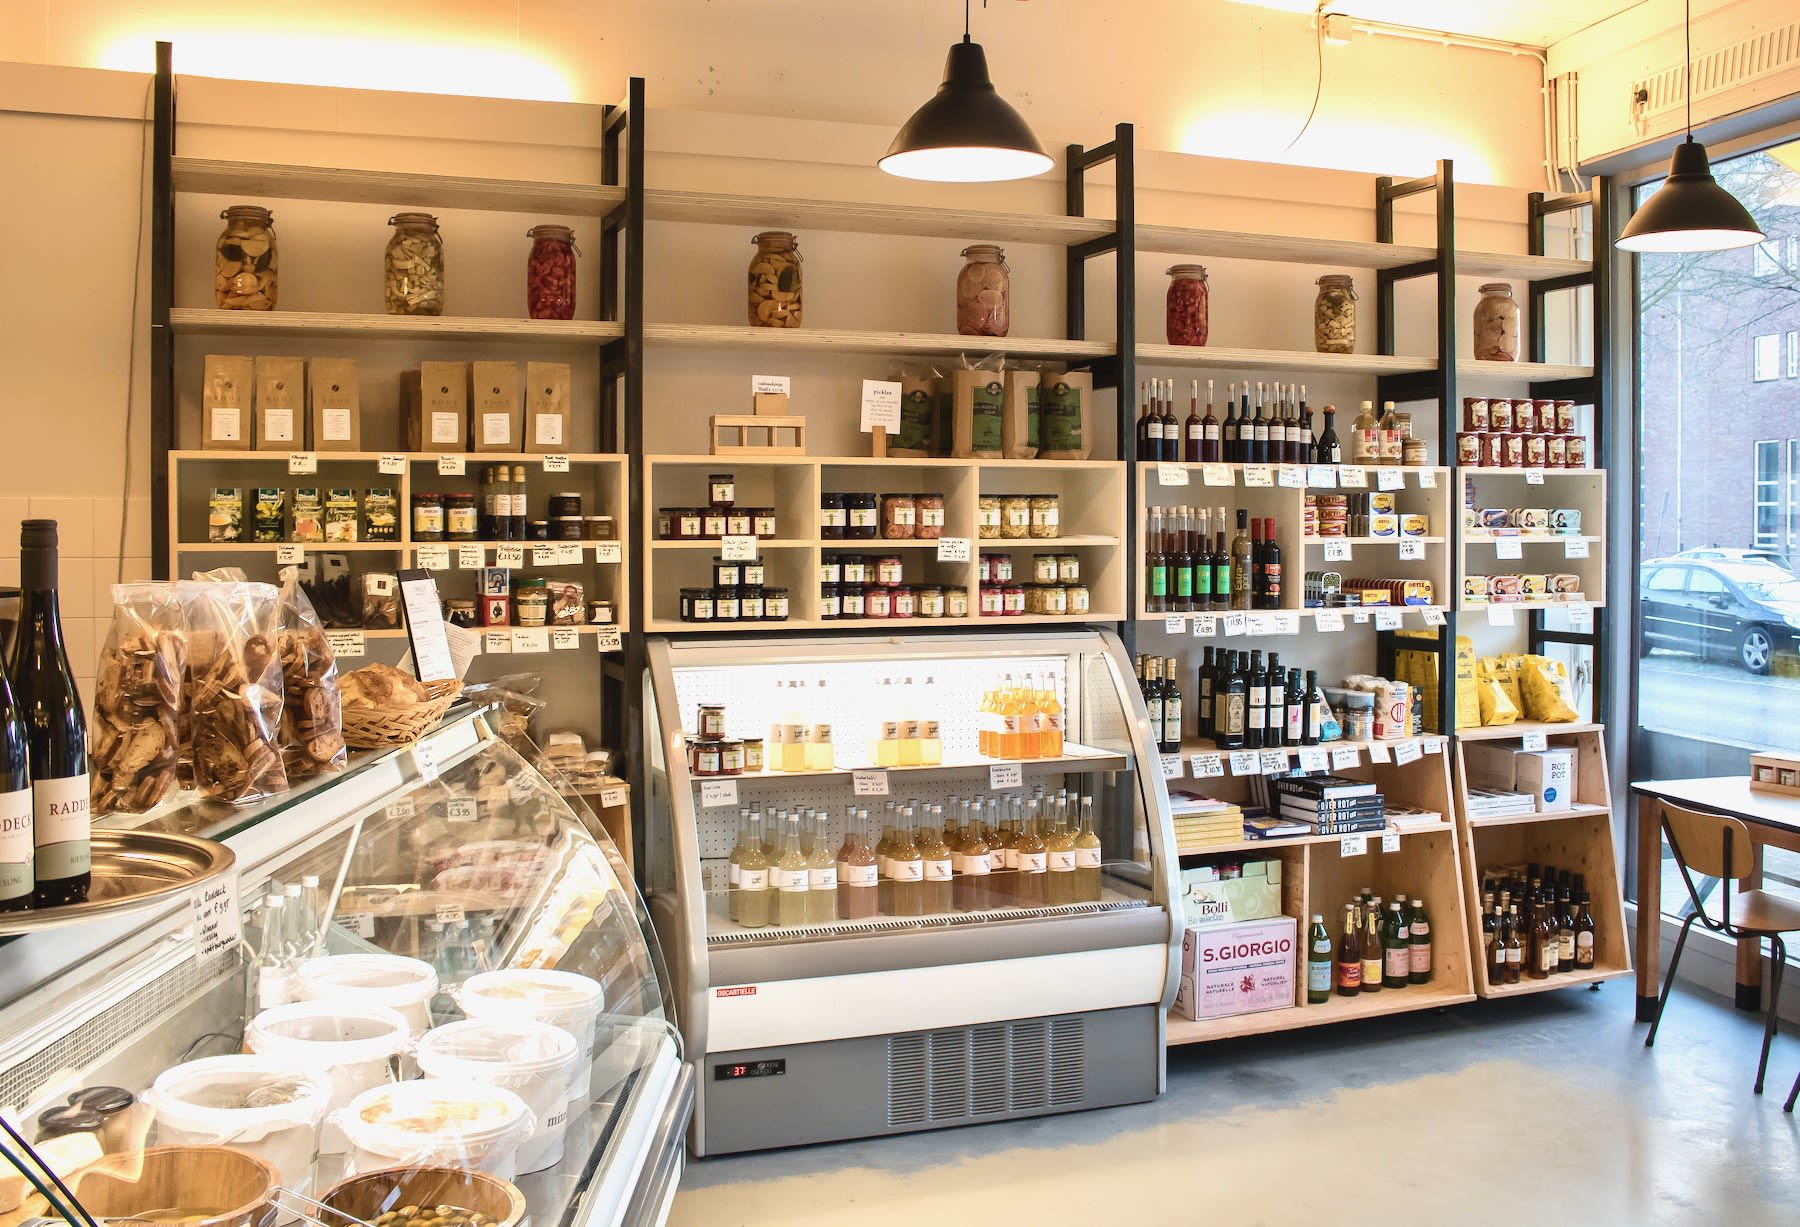 Amsterdam deli with fermented foods and drinks is artisanal and female-owned